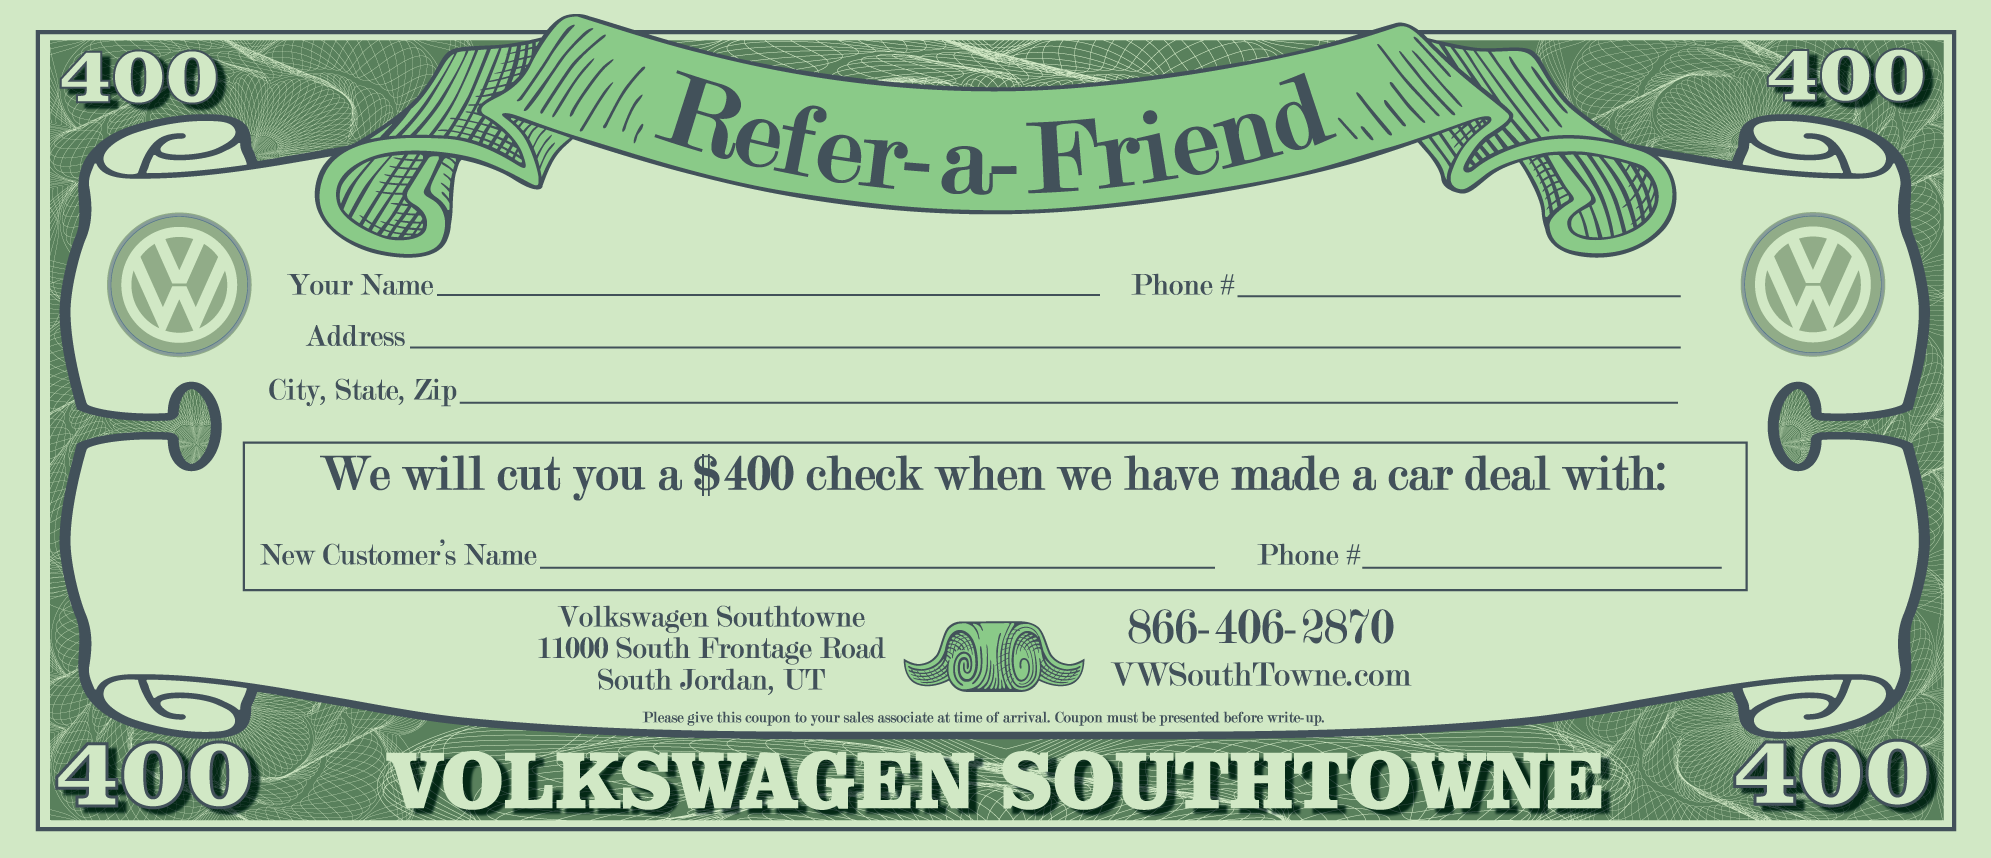 Earn $400 When You Refer-a-Friend | Volkswagen SouthTowne